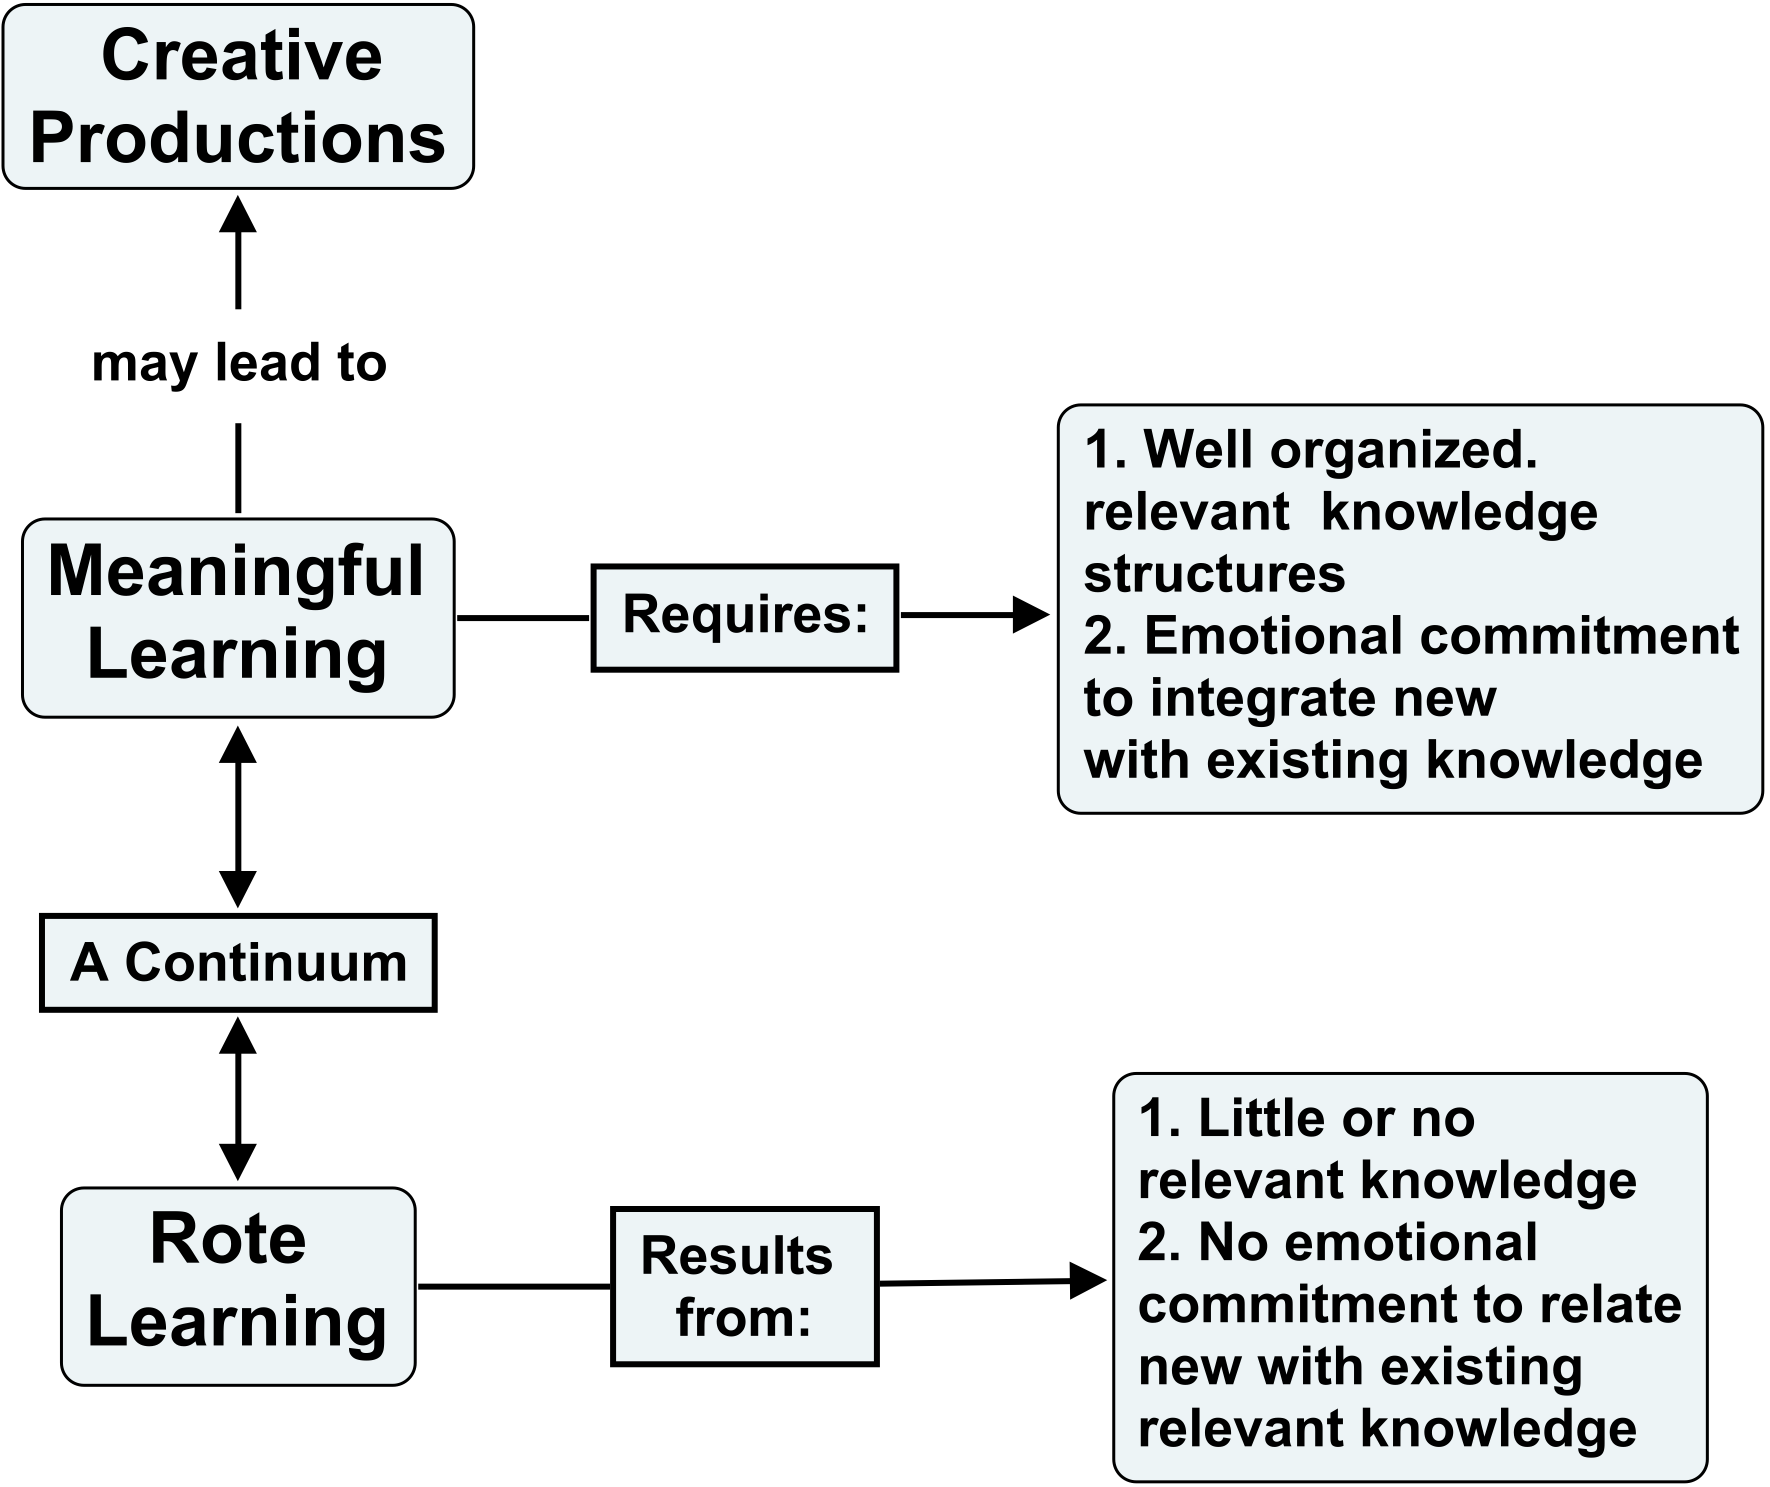 application of simple stimulus learning Some of the children took an inordinate amount of training time  through basic  research on compound stimulus presentations,  this article is intended solely  for the personal use of the individual user and is not to be disseminated broadly.